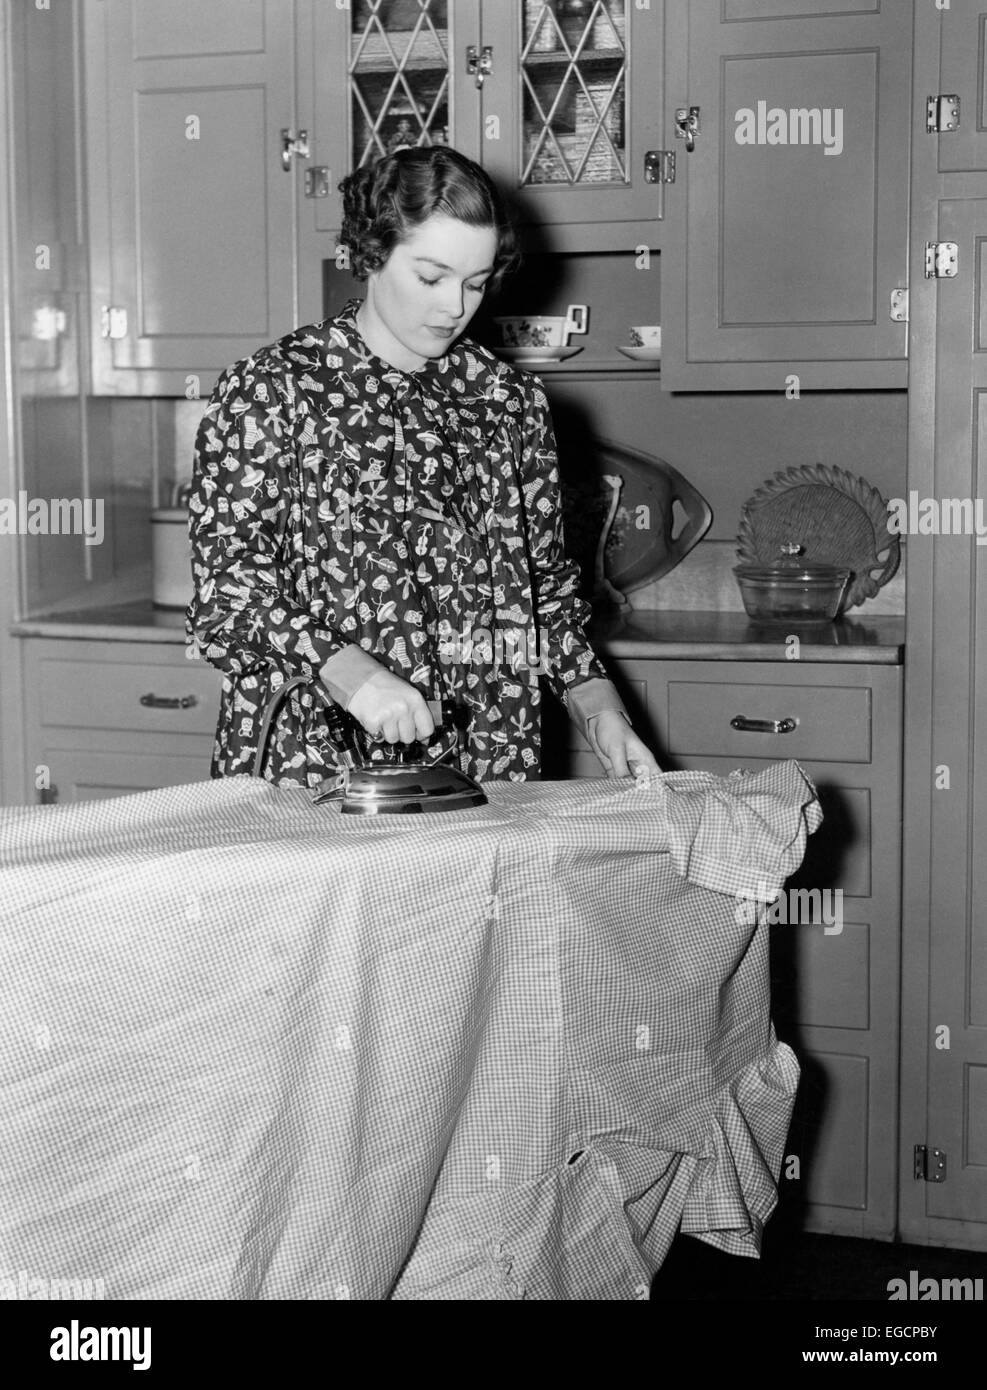 White apron cape town -  1930s 1940s Woman Wearing Printed Smock Apron Standing Ironing Board Pushing Electric Iron Stock Photo